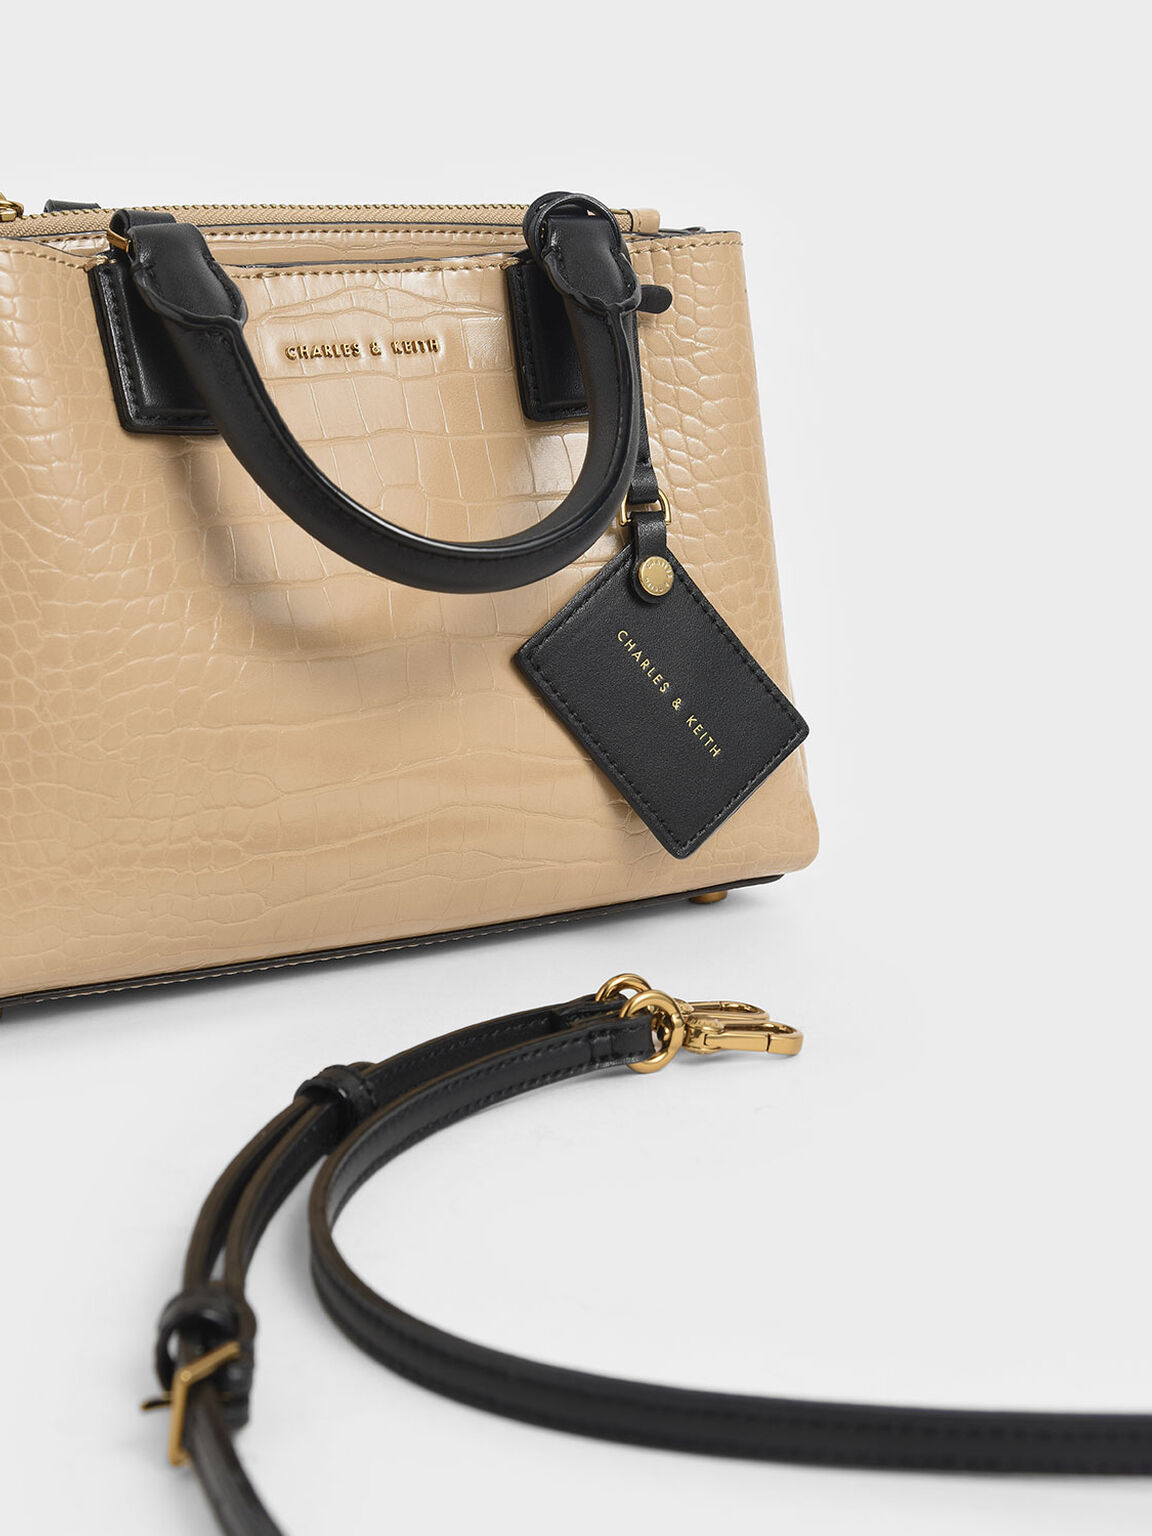 Croc-Effect Structured Bag, Beige, hi-res